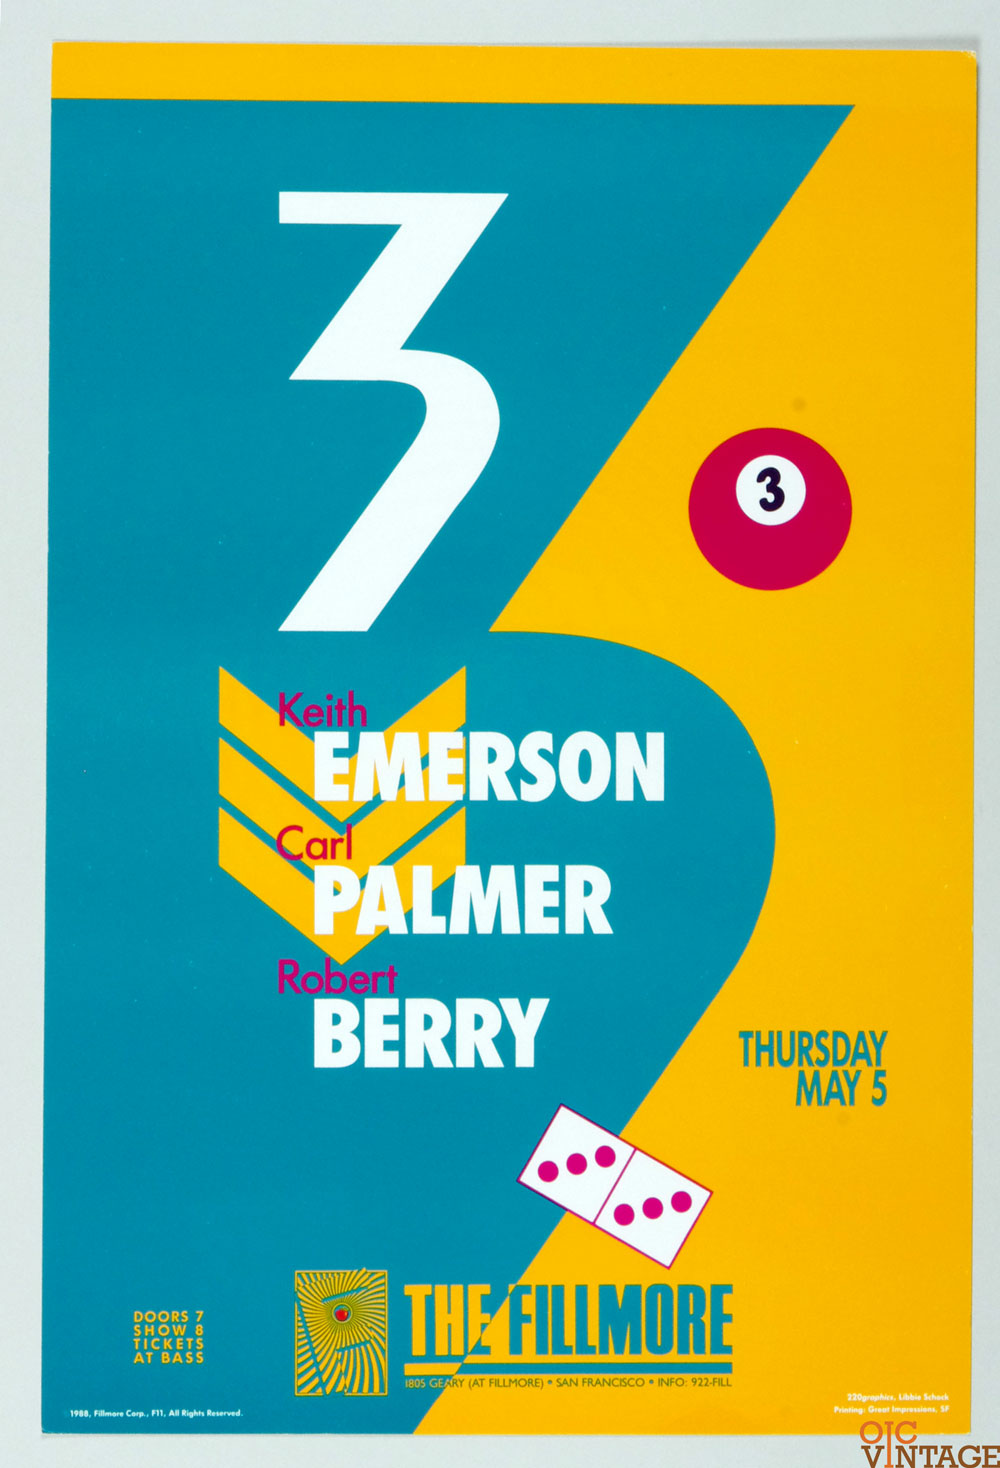 New Fillmore F011 Poster Emerson Palmer Berry 1988 May 5